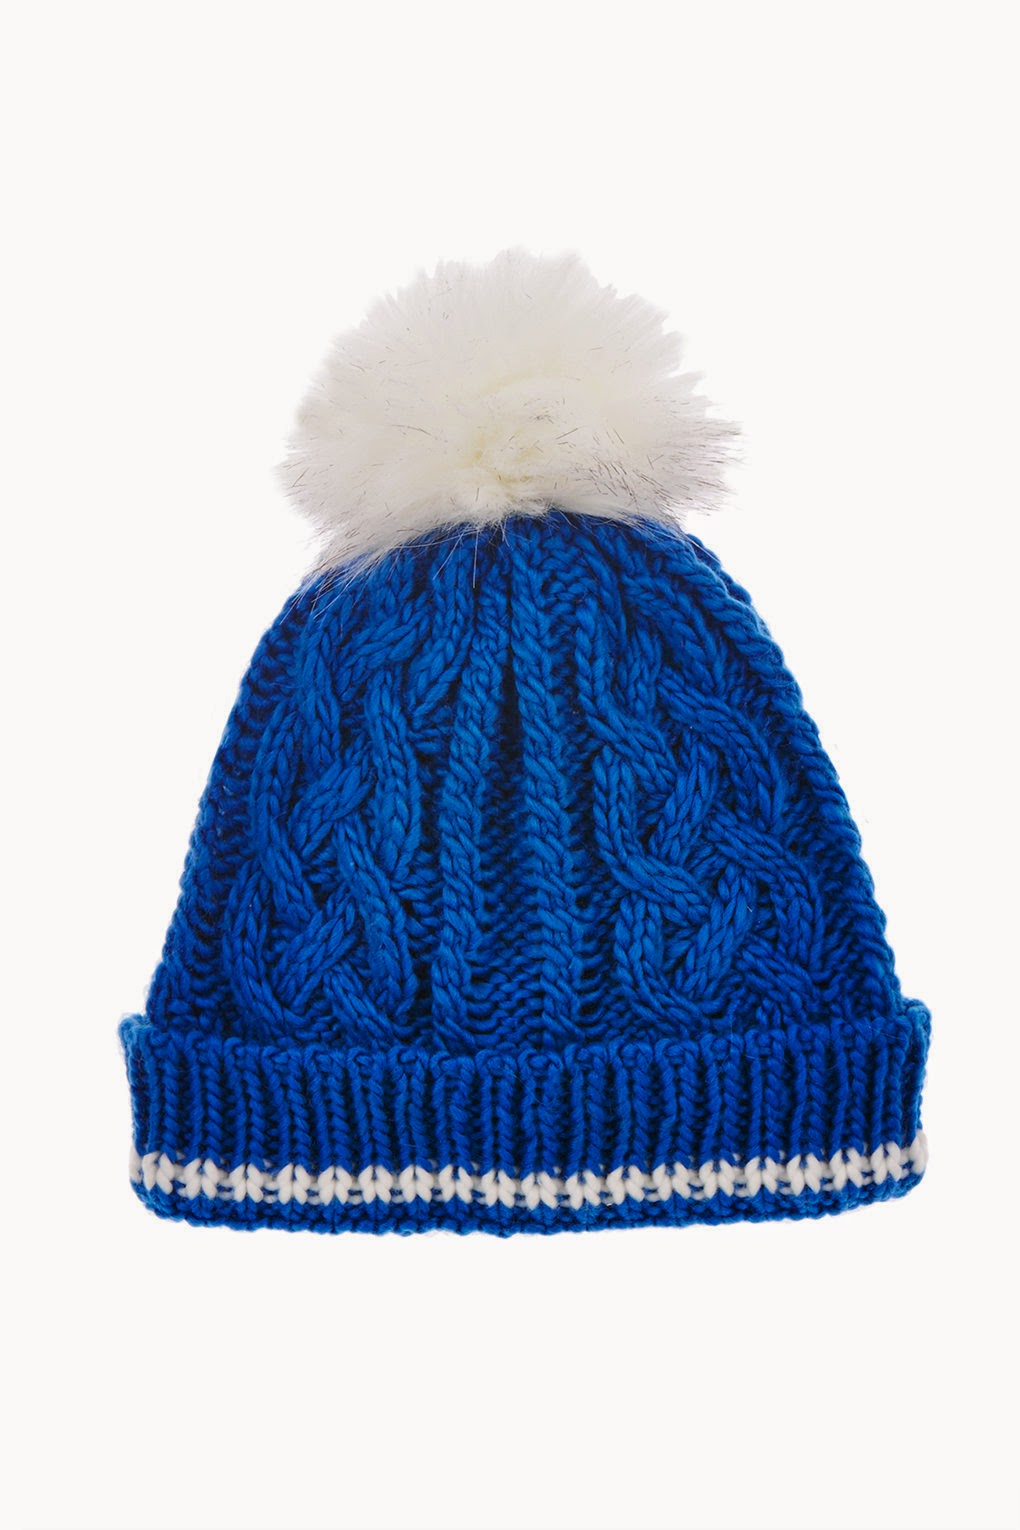 blue and white pom pom hat